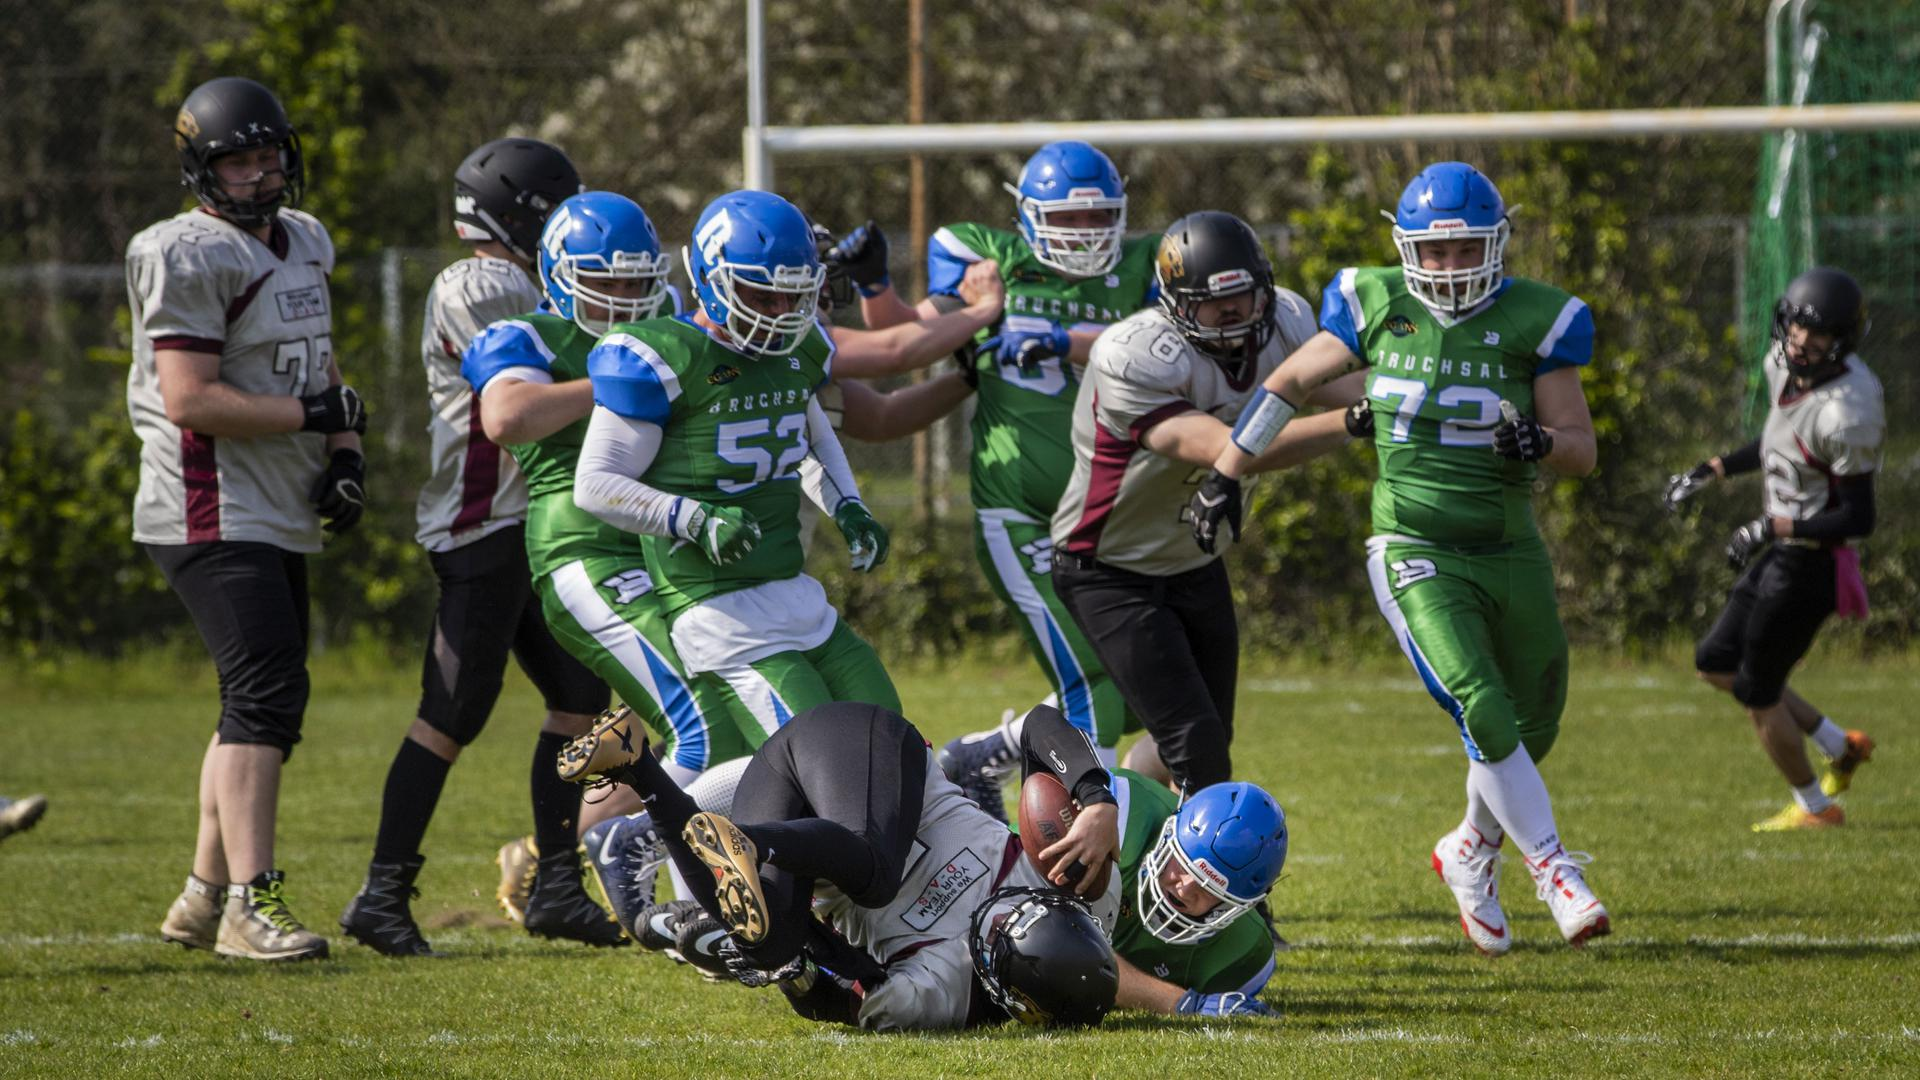 07.04.2019, Bruchsal, American Football,  Bruchsal Rebels - Bretten Panthers,